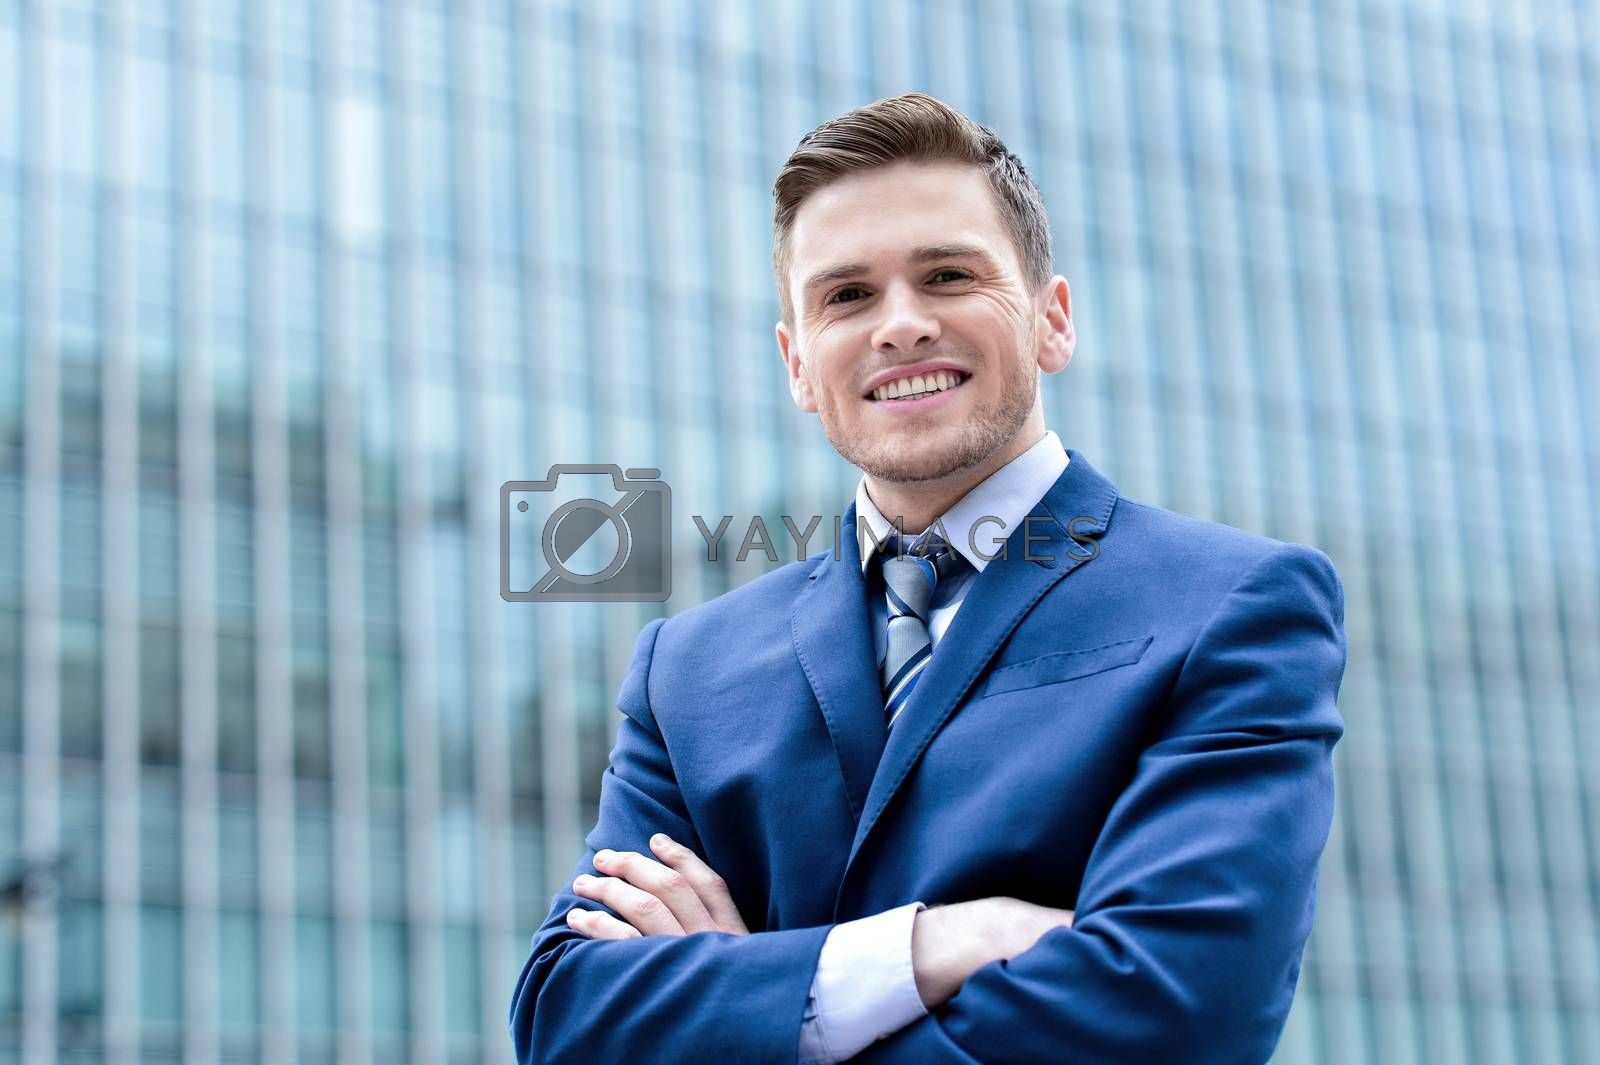 Confident businessman posing with folded arms outside skyscraper